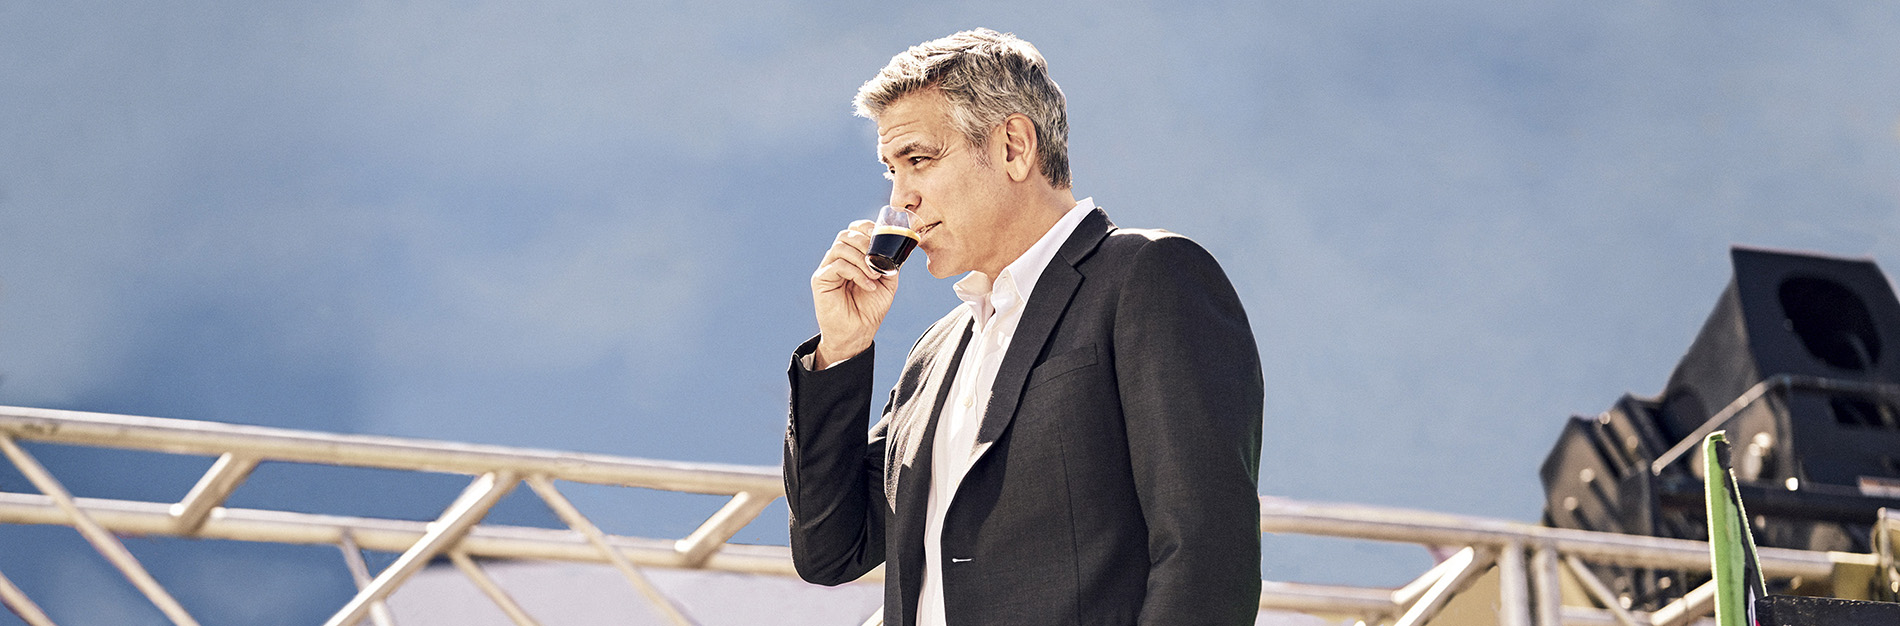 Clooney sipping Nespresso